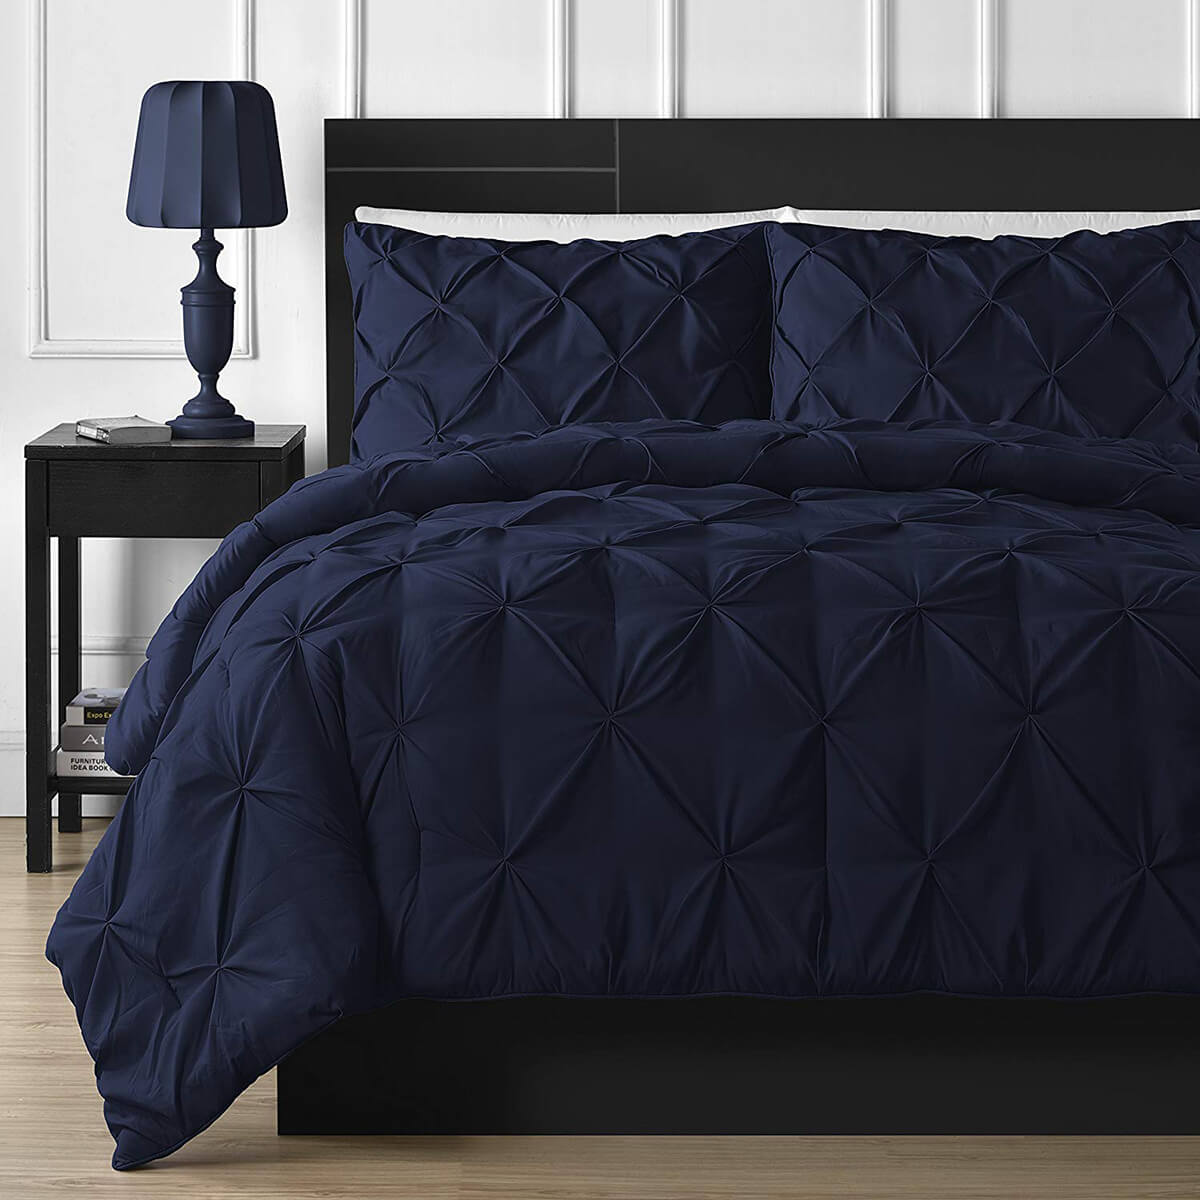 Positively Classic Style Bedding in Sumptuous Navy